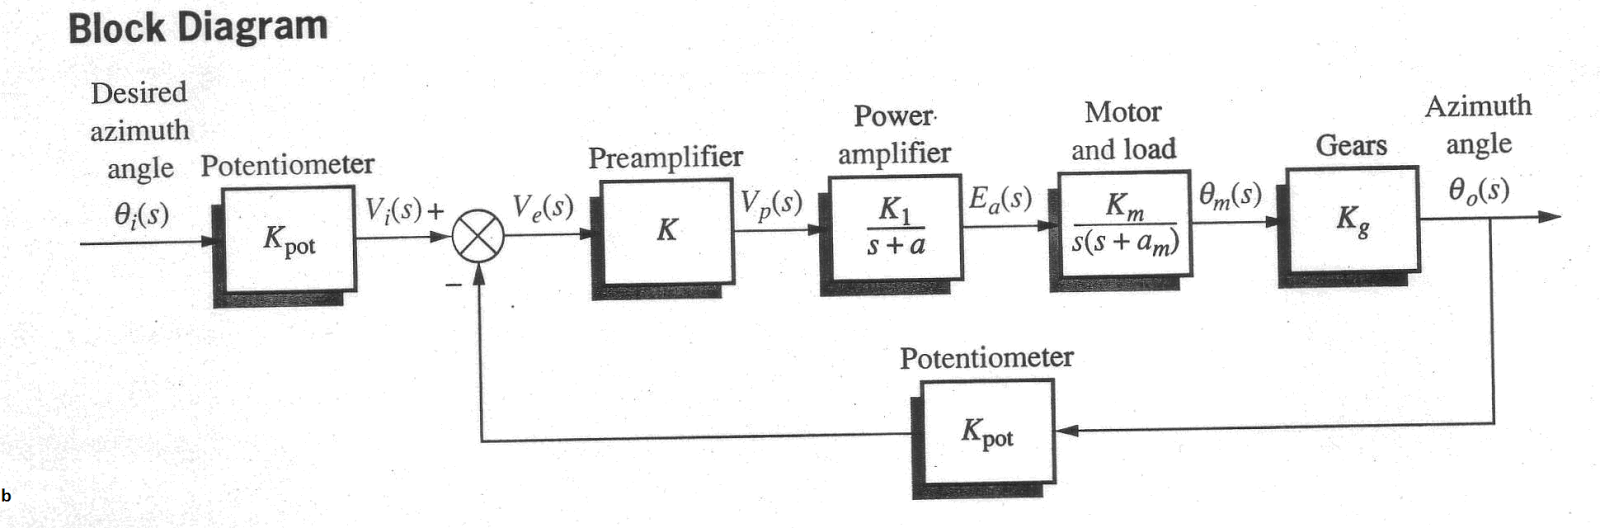 Pid Control Block Diagram